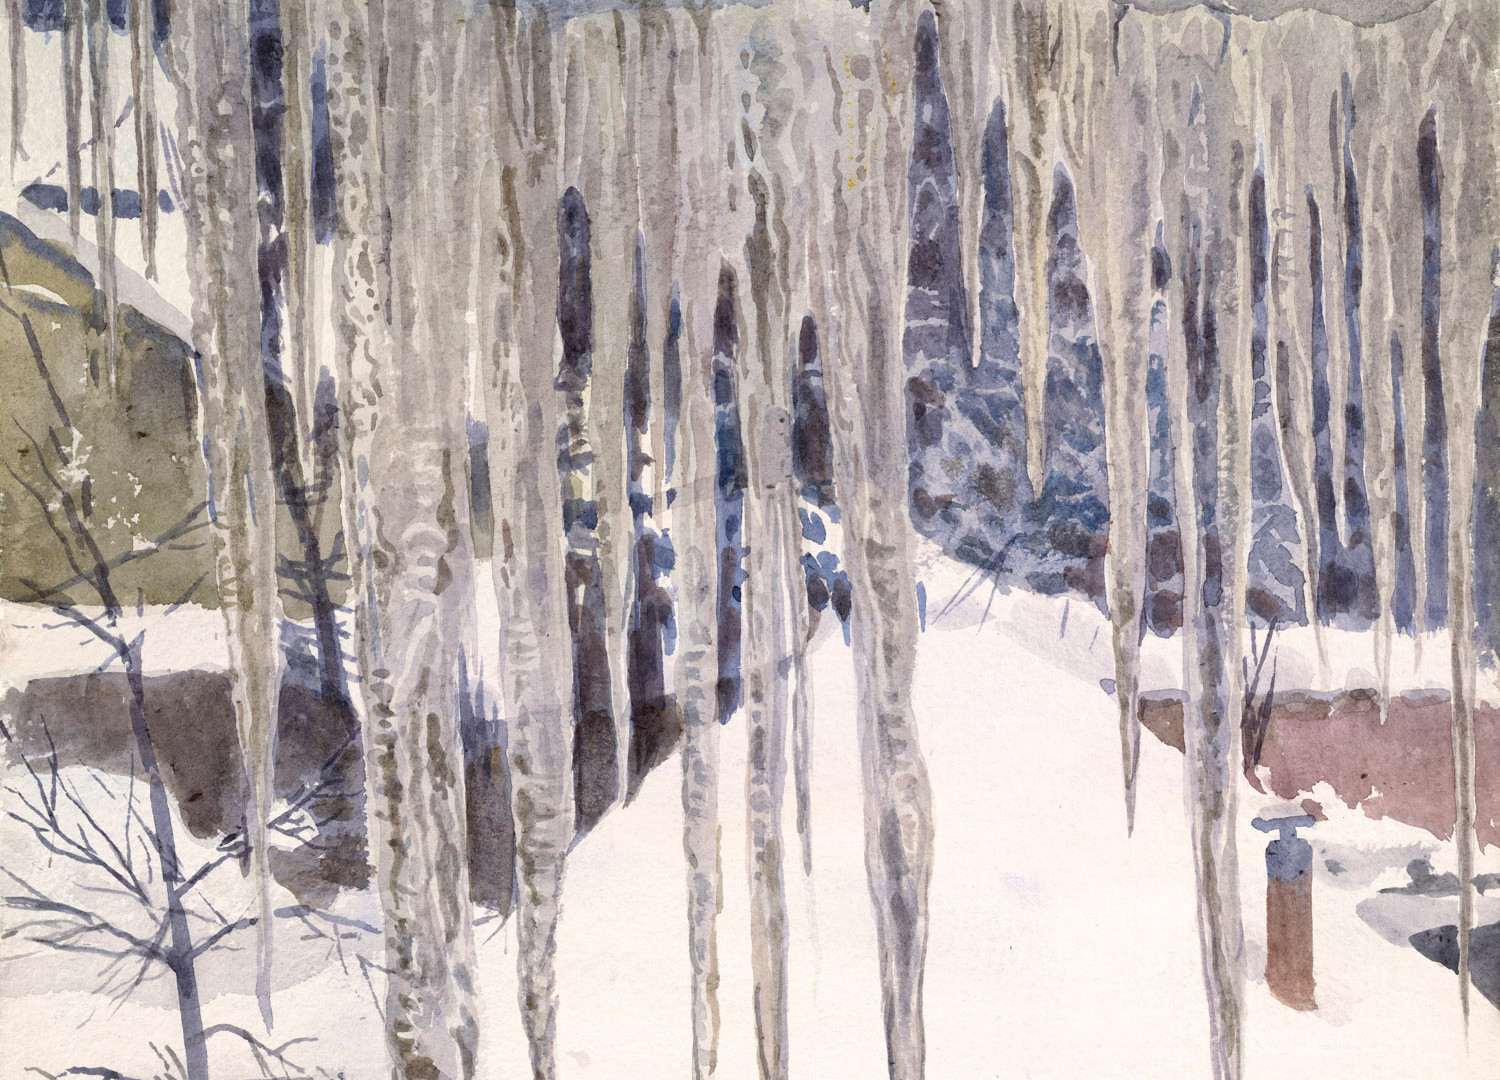 The thaw. Icicles, 2010